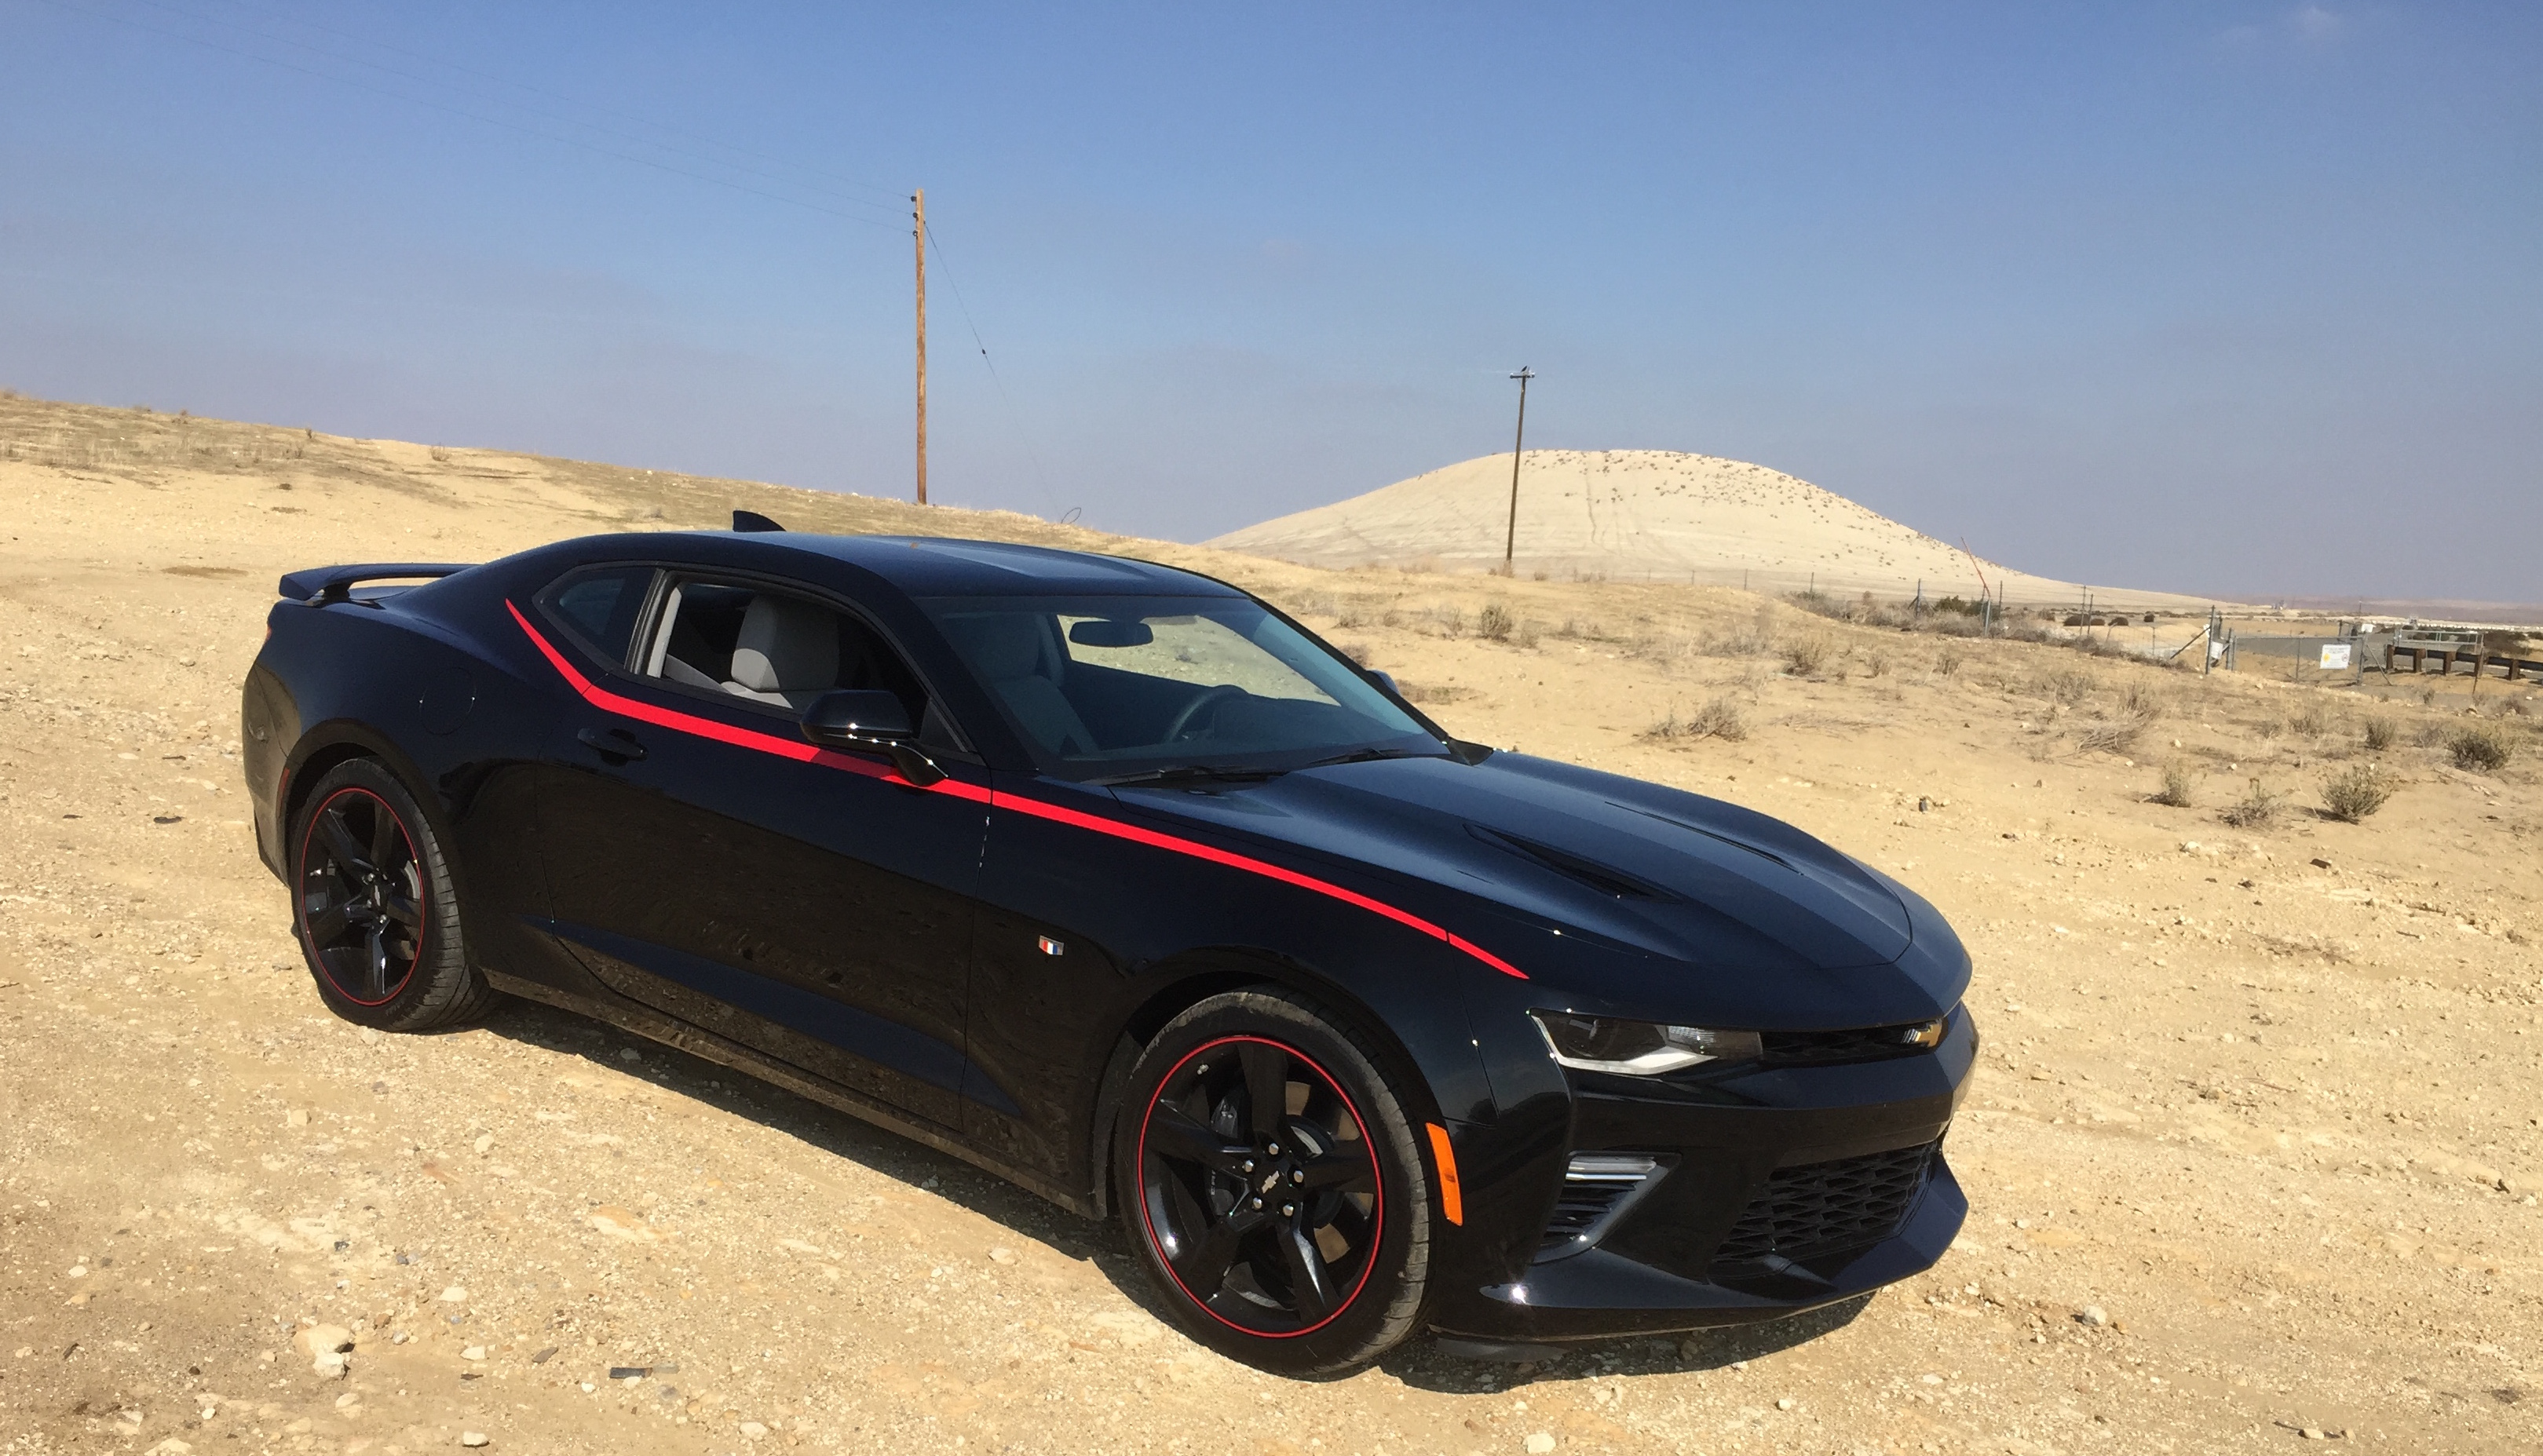 Finding New Roads In The 2016 Chevy Camaro San Jose To The City Of